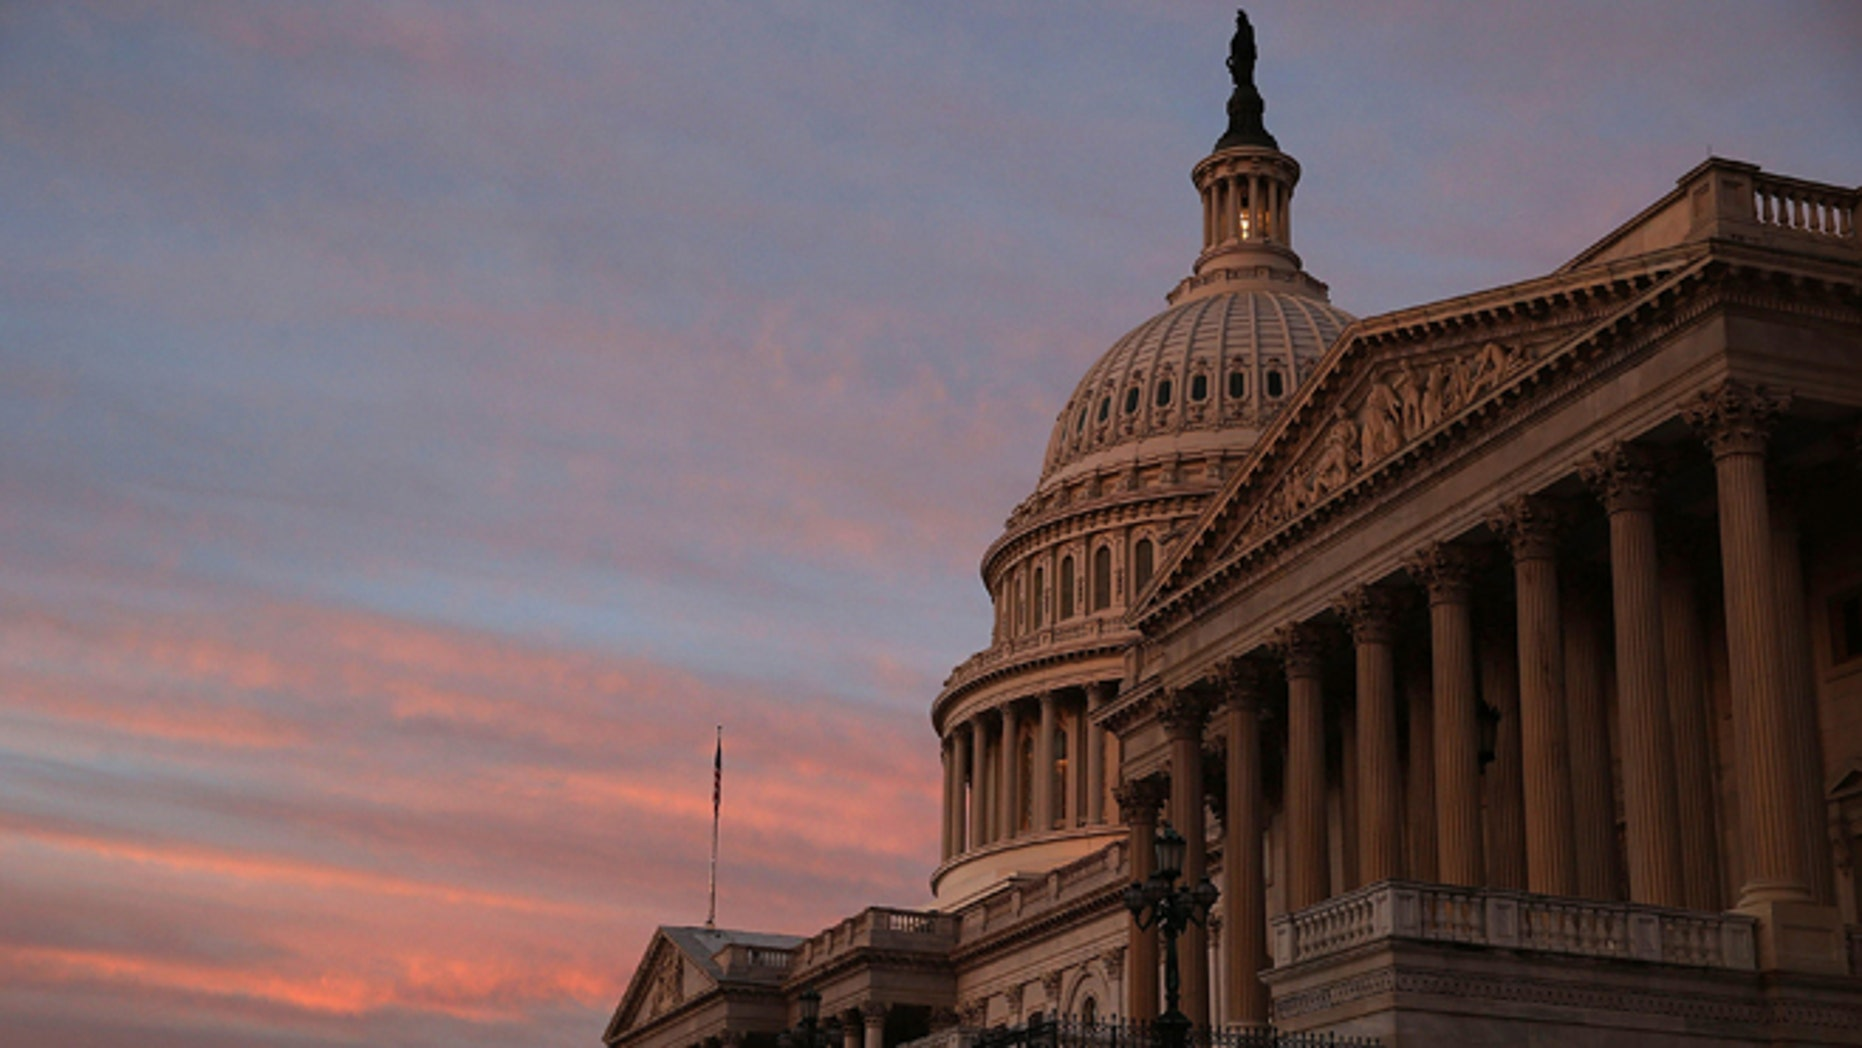 WASHINGTON, DC - SEPTEMBER 25: The sky changes color over the U.S. Capitol as the sun begins to rise September 25, 2013 in Washington, DC.  Later today the U.S. Senate will vote on a stopgap spending bill that that passed the House last week.  (Photo by Mark Wilson/Getty Images)